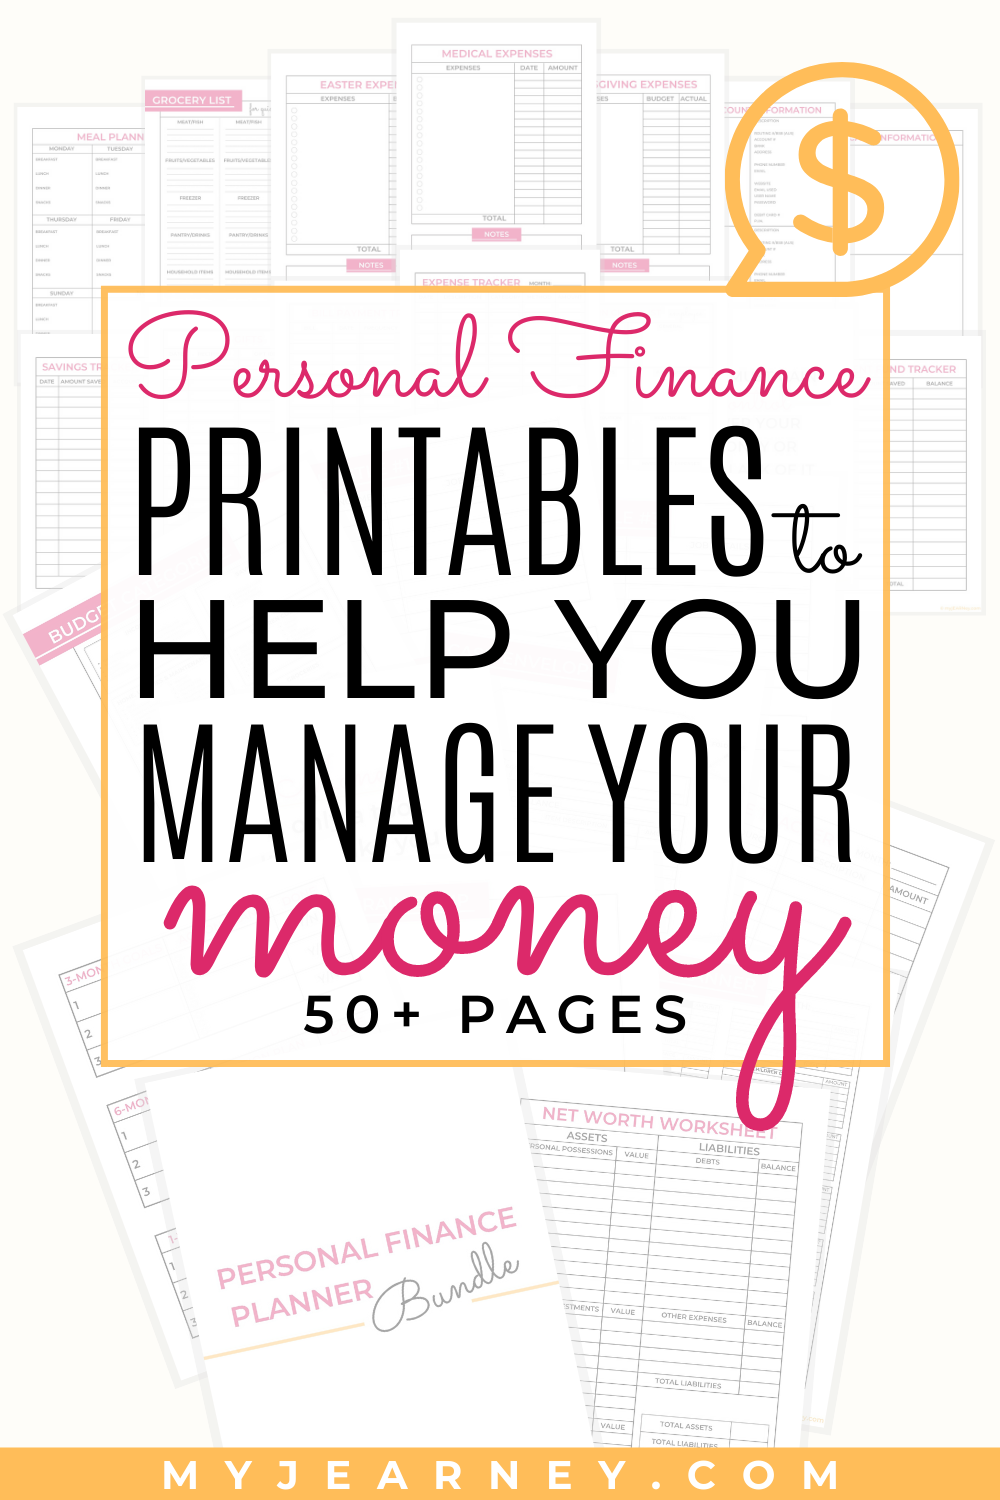 Personal Finance Planner Bundle 50 Pages In 2020 Personal Finance Finance Finance Planner